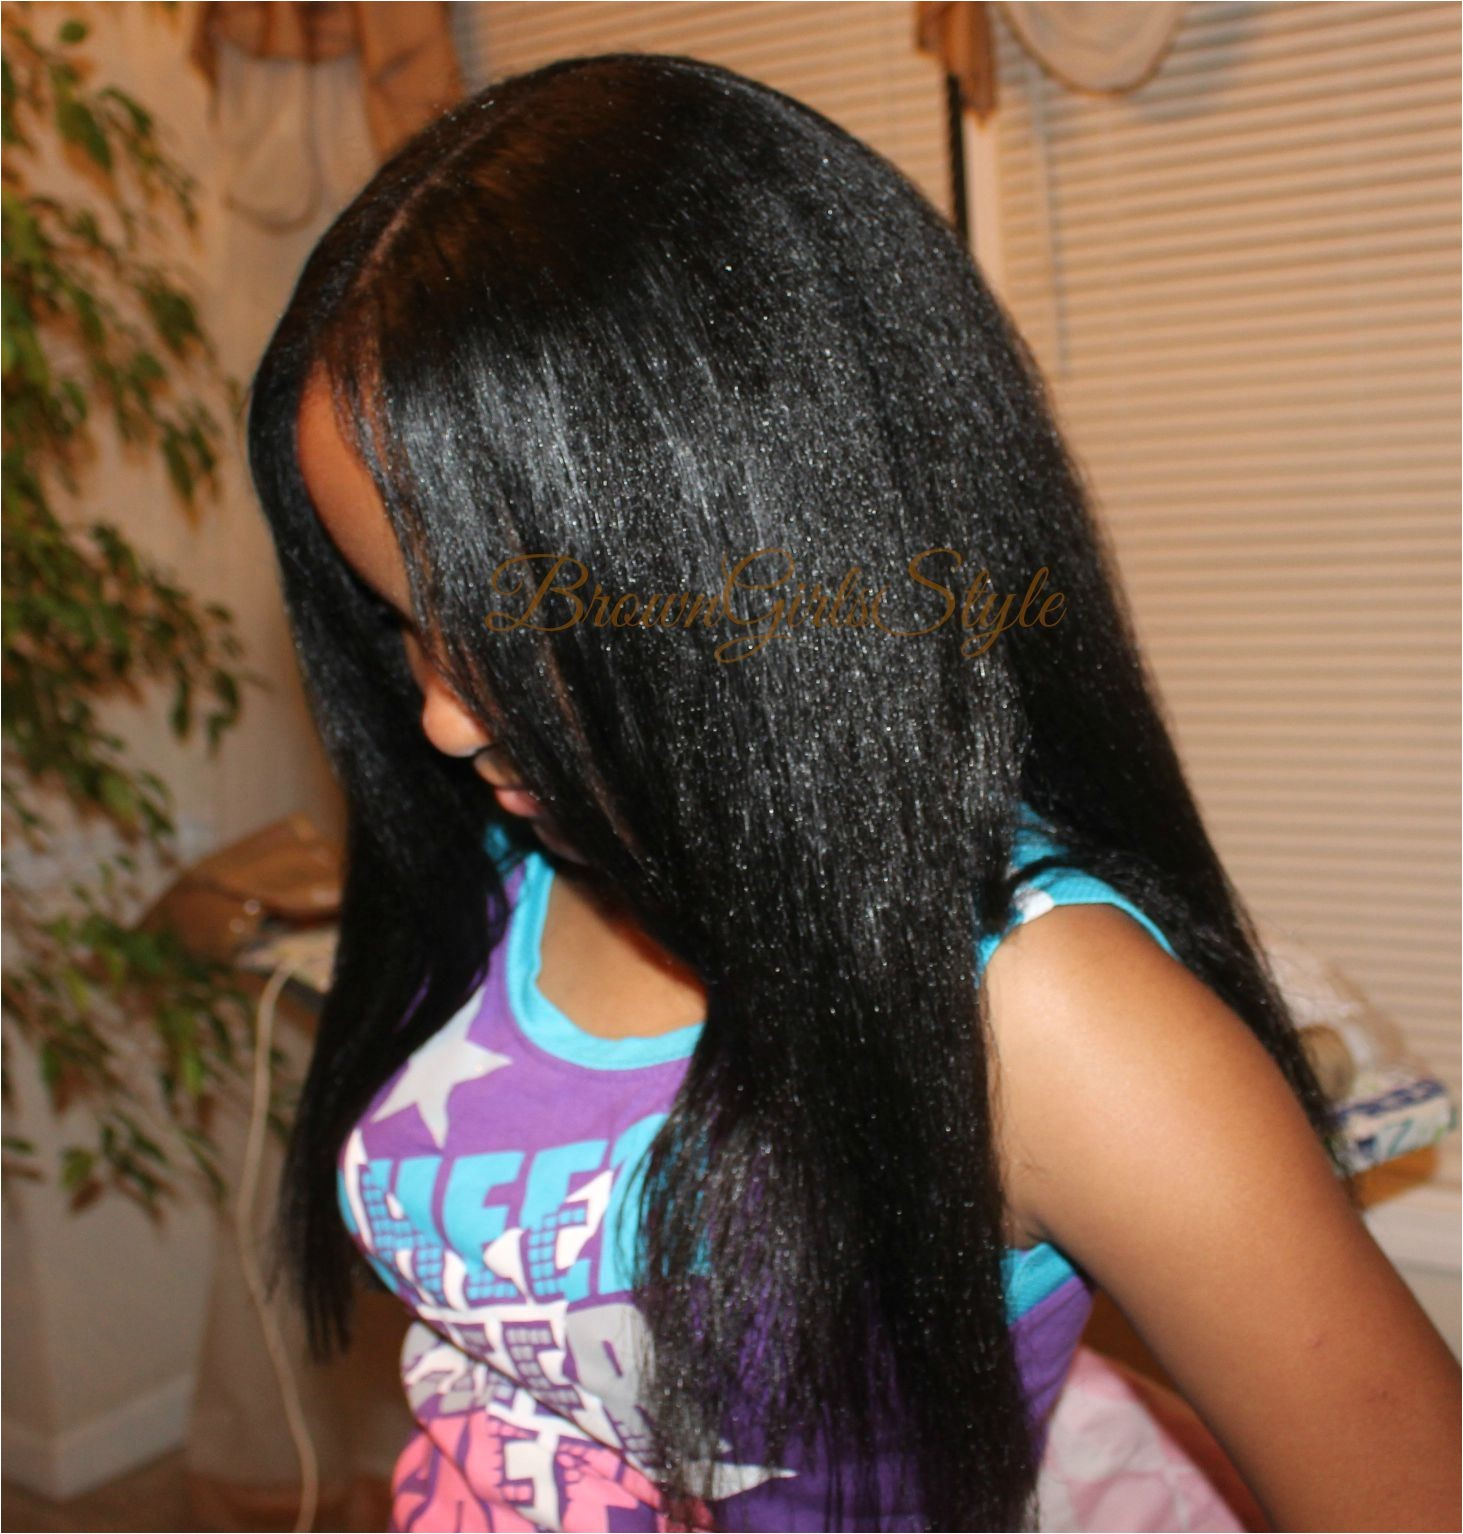 little black girls natural hair flat ironed back to school washday